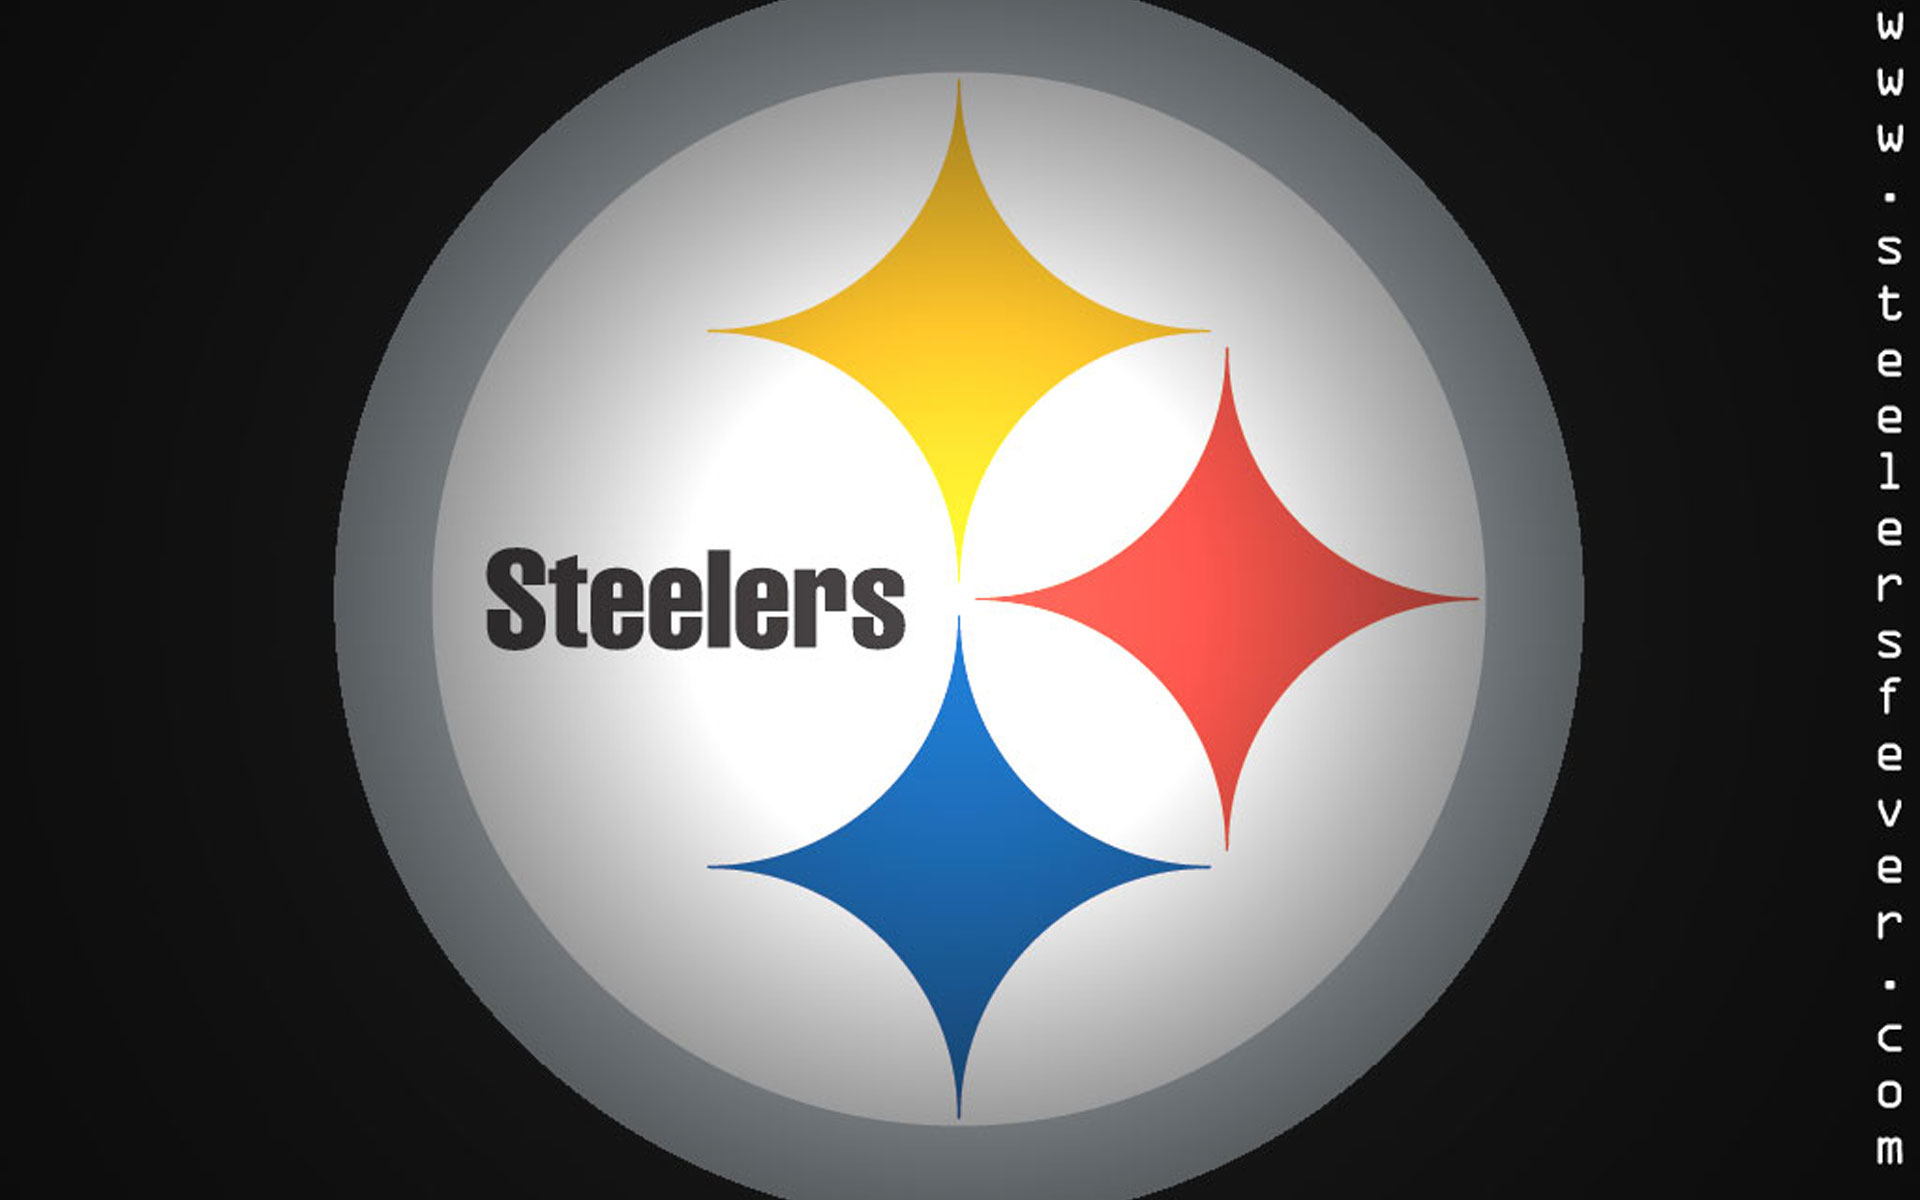 Free Steelers Wallpaper Downloads Posted By Ethan Thompson